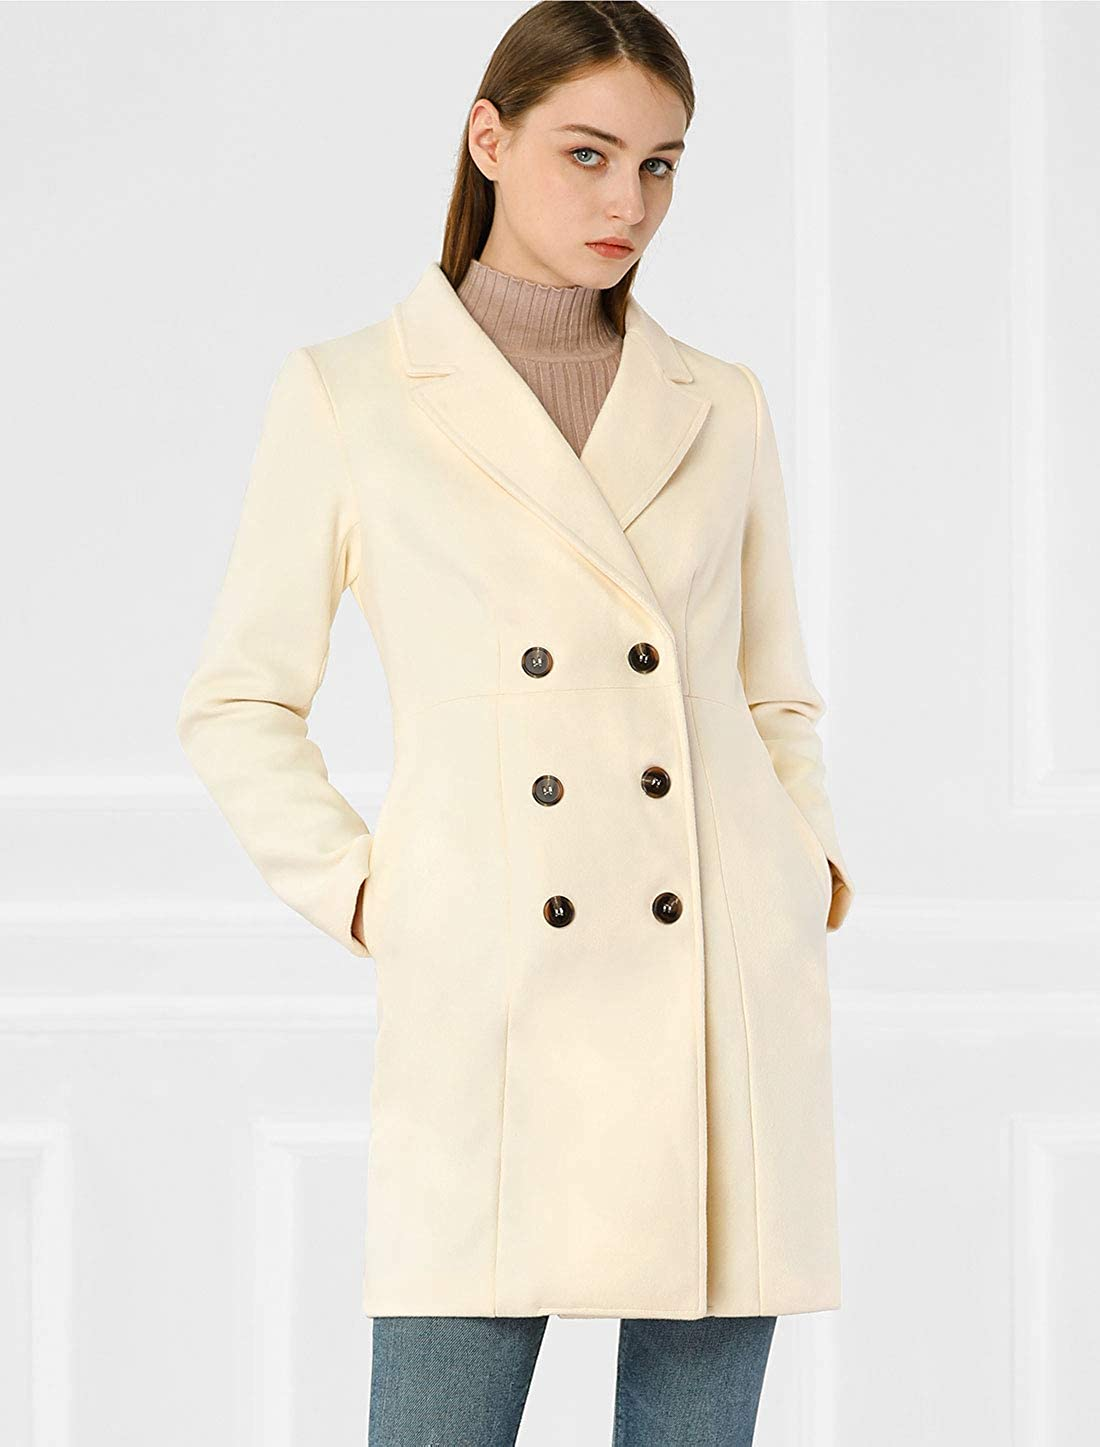 Allegra K Womens Double Breasted Notched Lapel Long Winter Coats